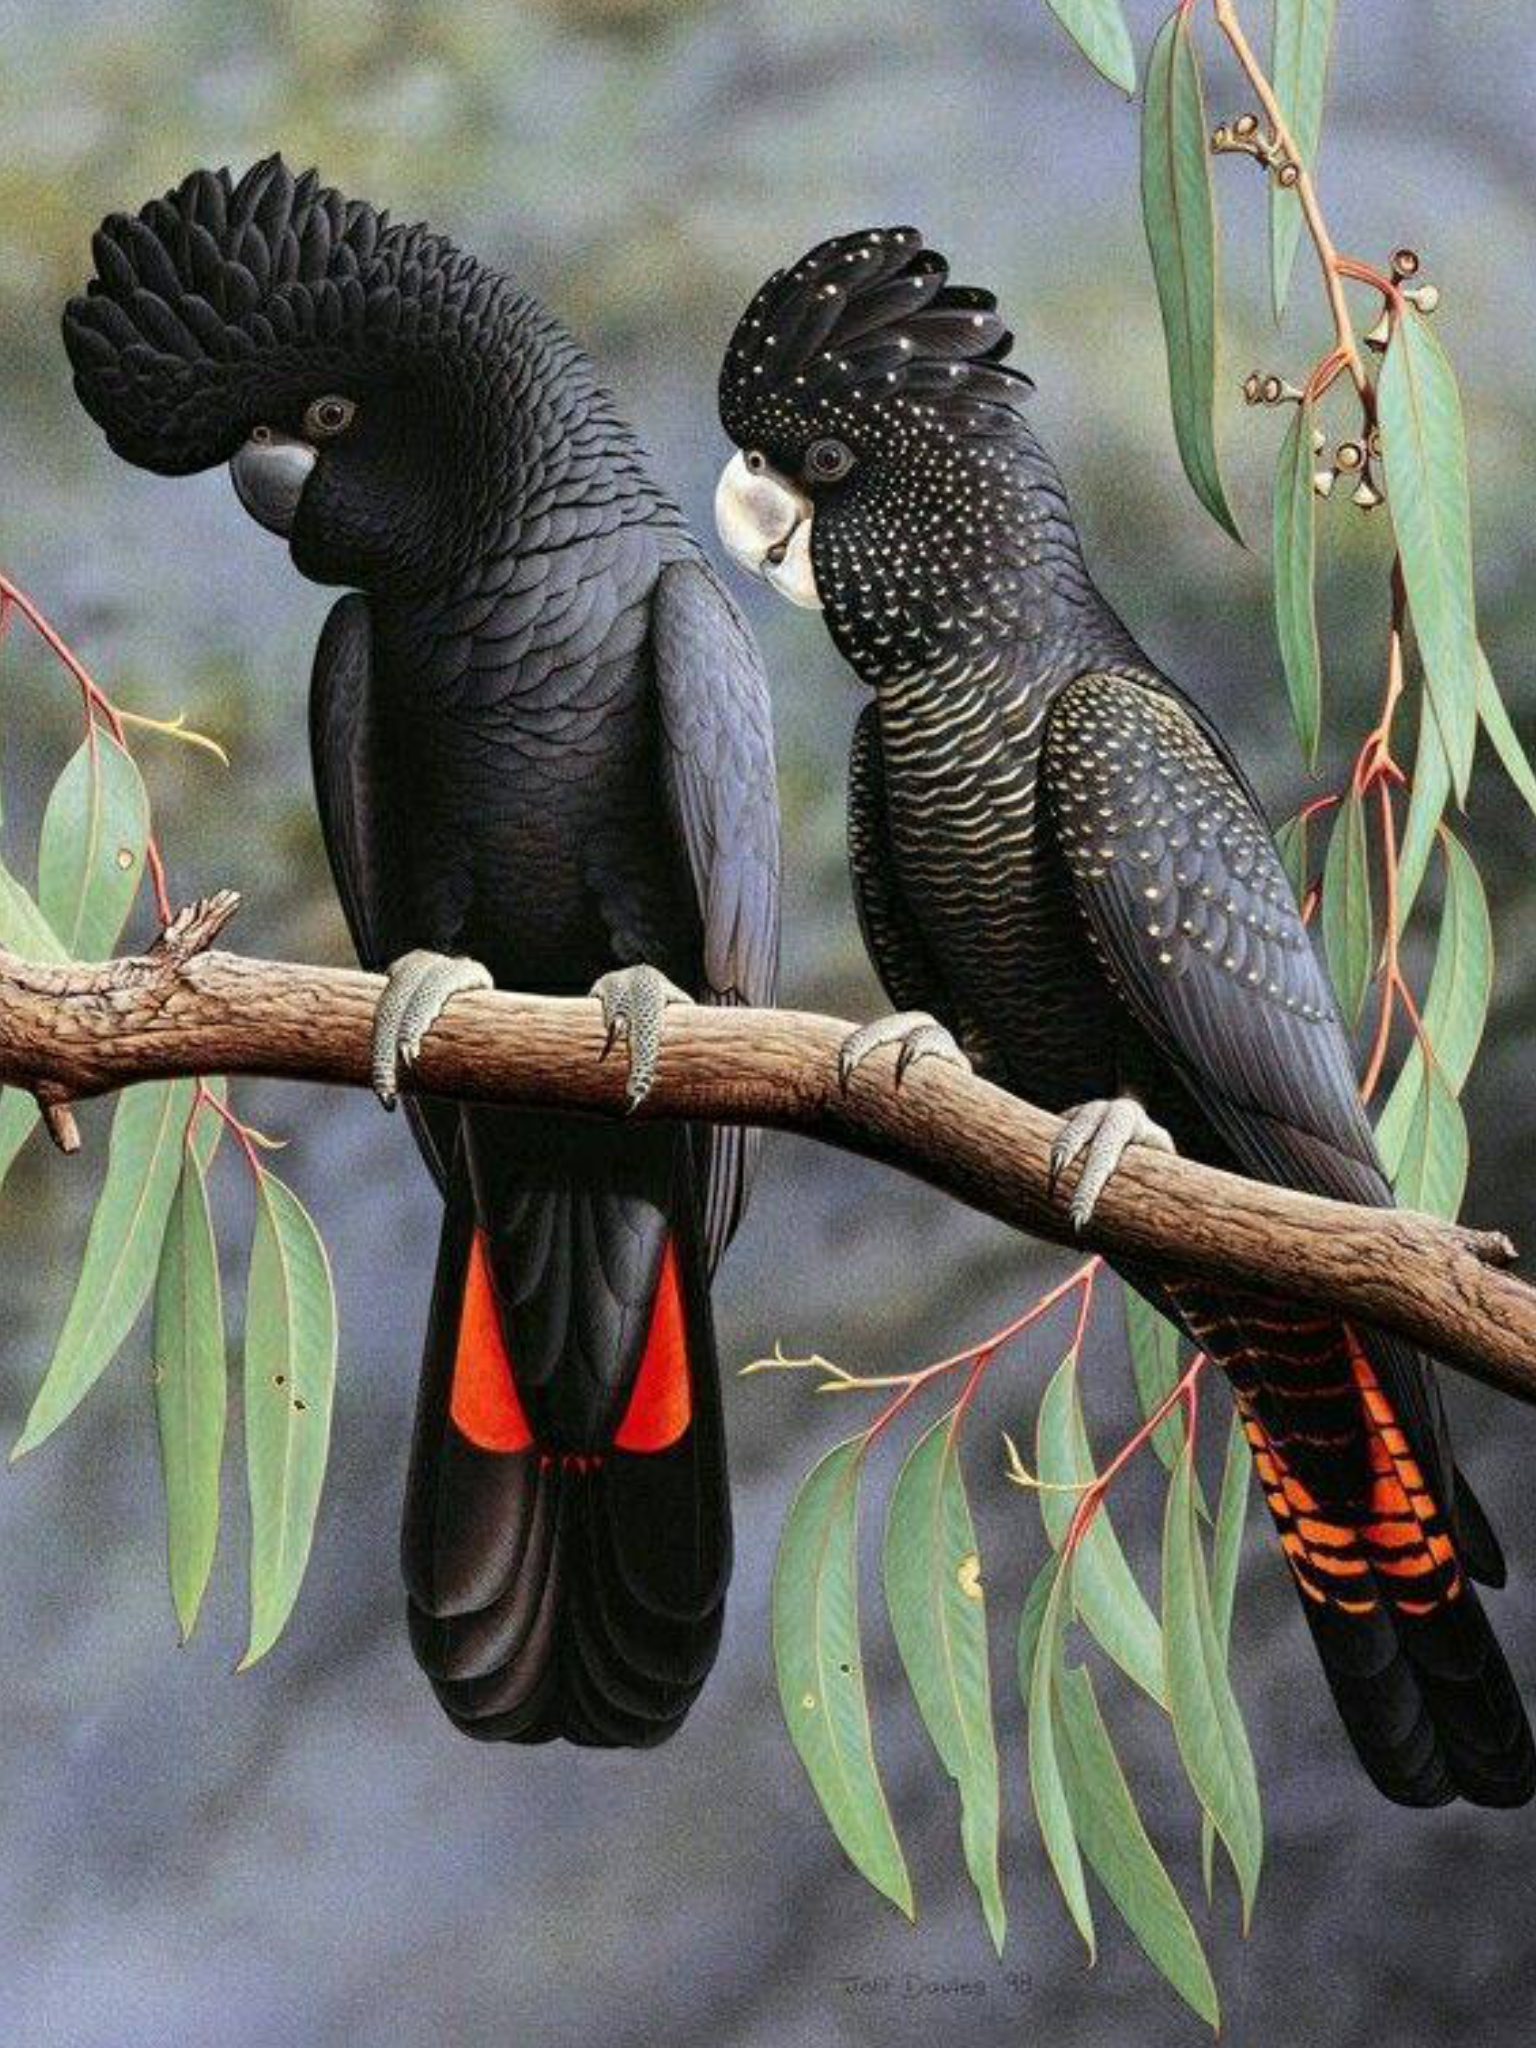 The Red tailed Black Cockatoo Calyptorhynchus banksii also known